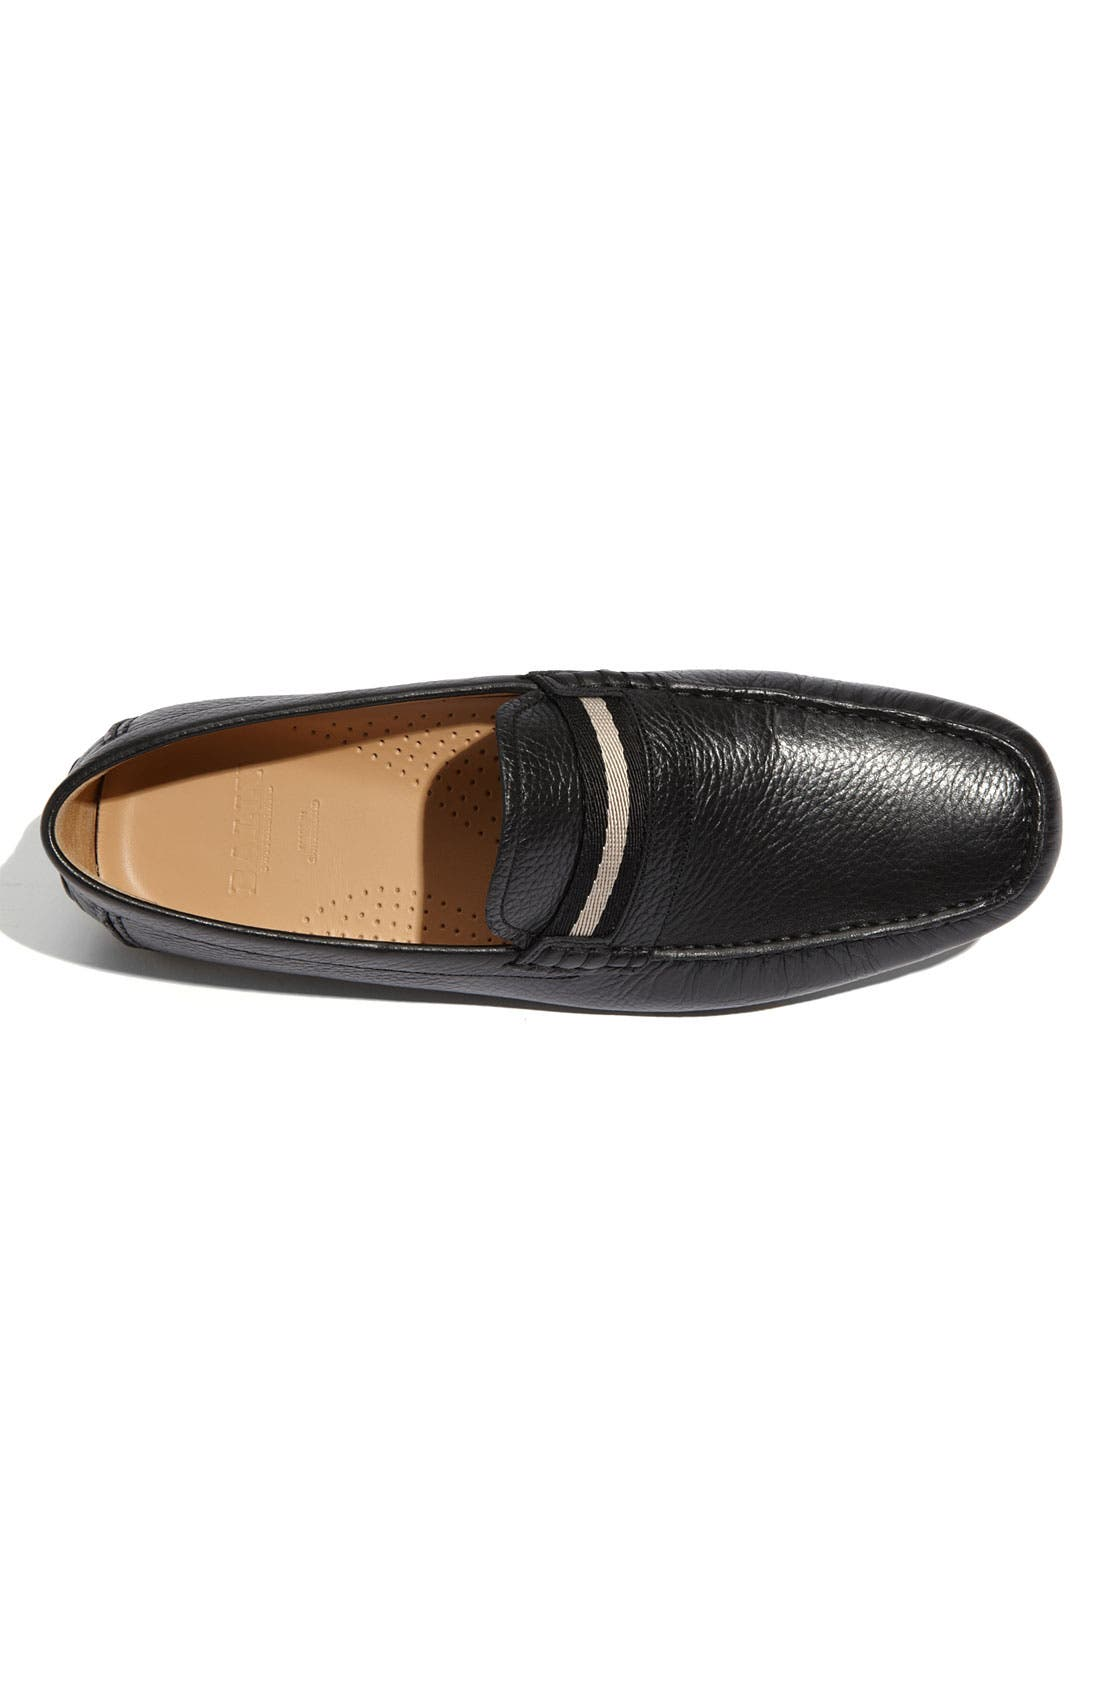 Alternate Image 3  - Bally 'Wabler' Loafer (Men)